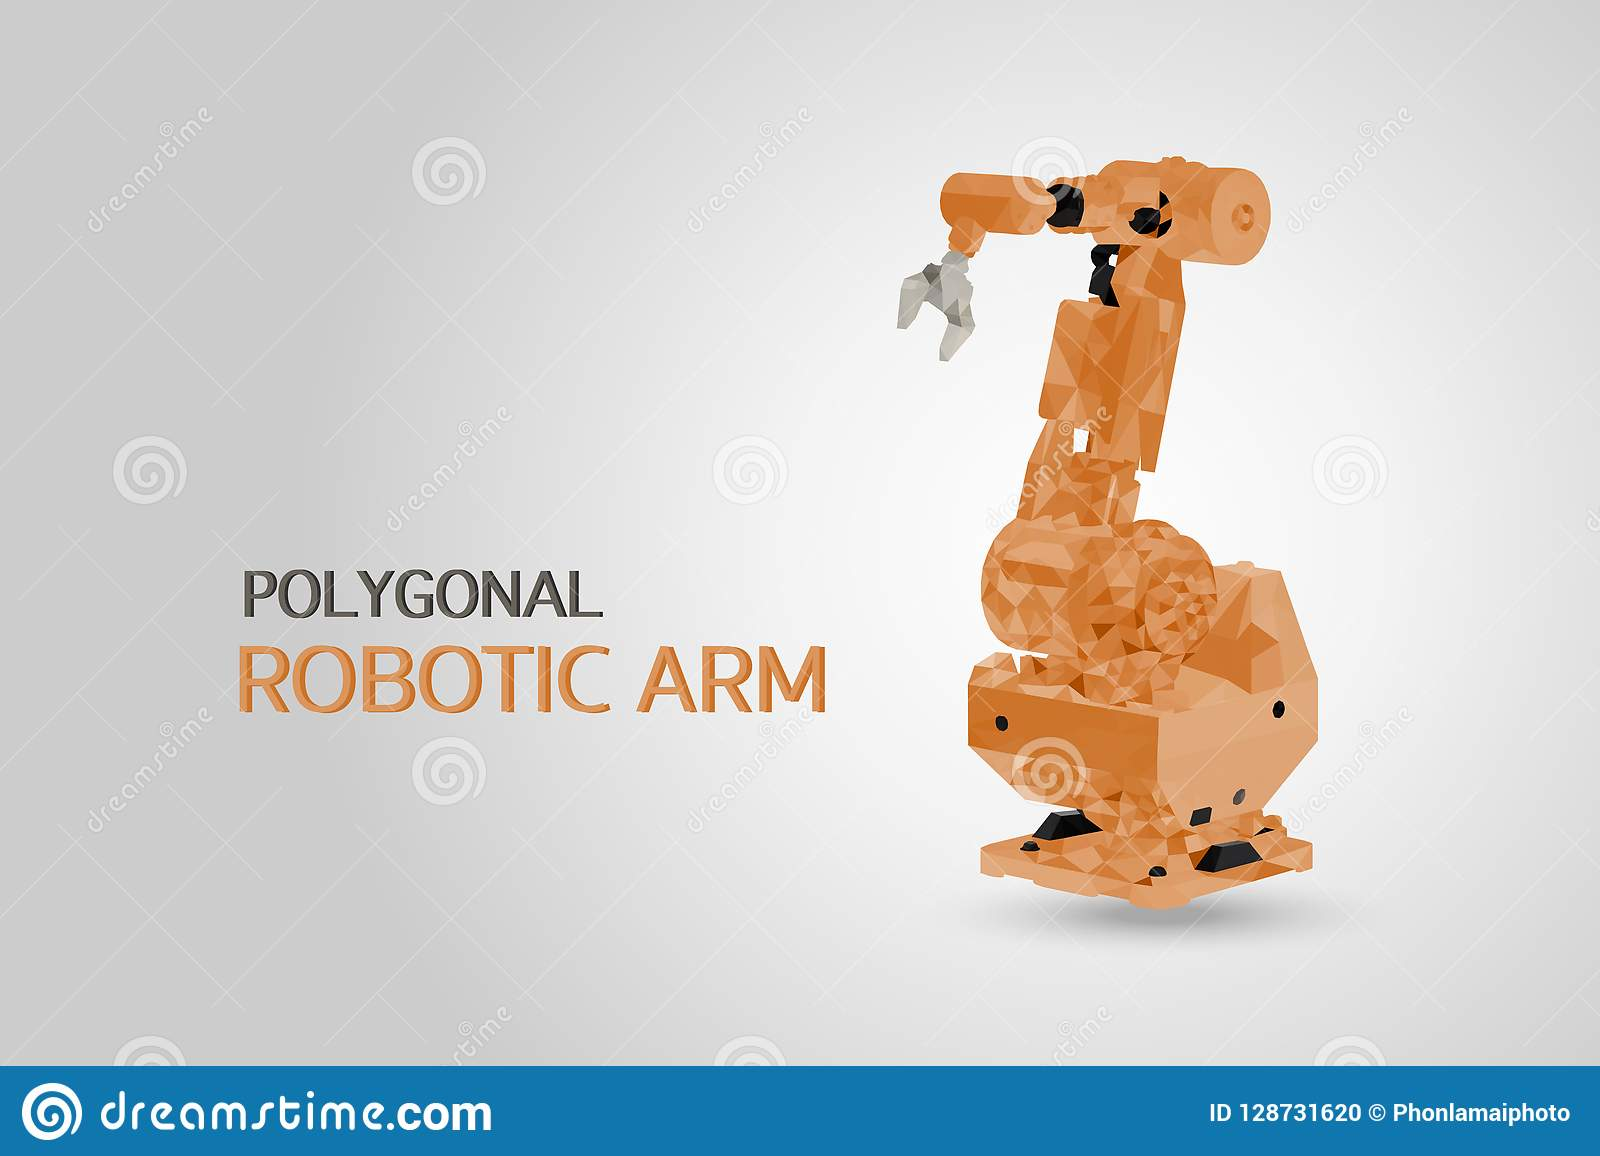 Polygonal robotic arm stock vector  Illustration of industry